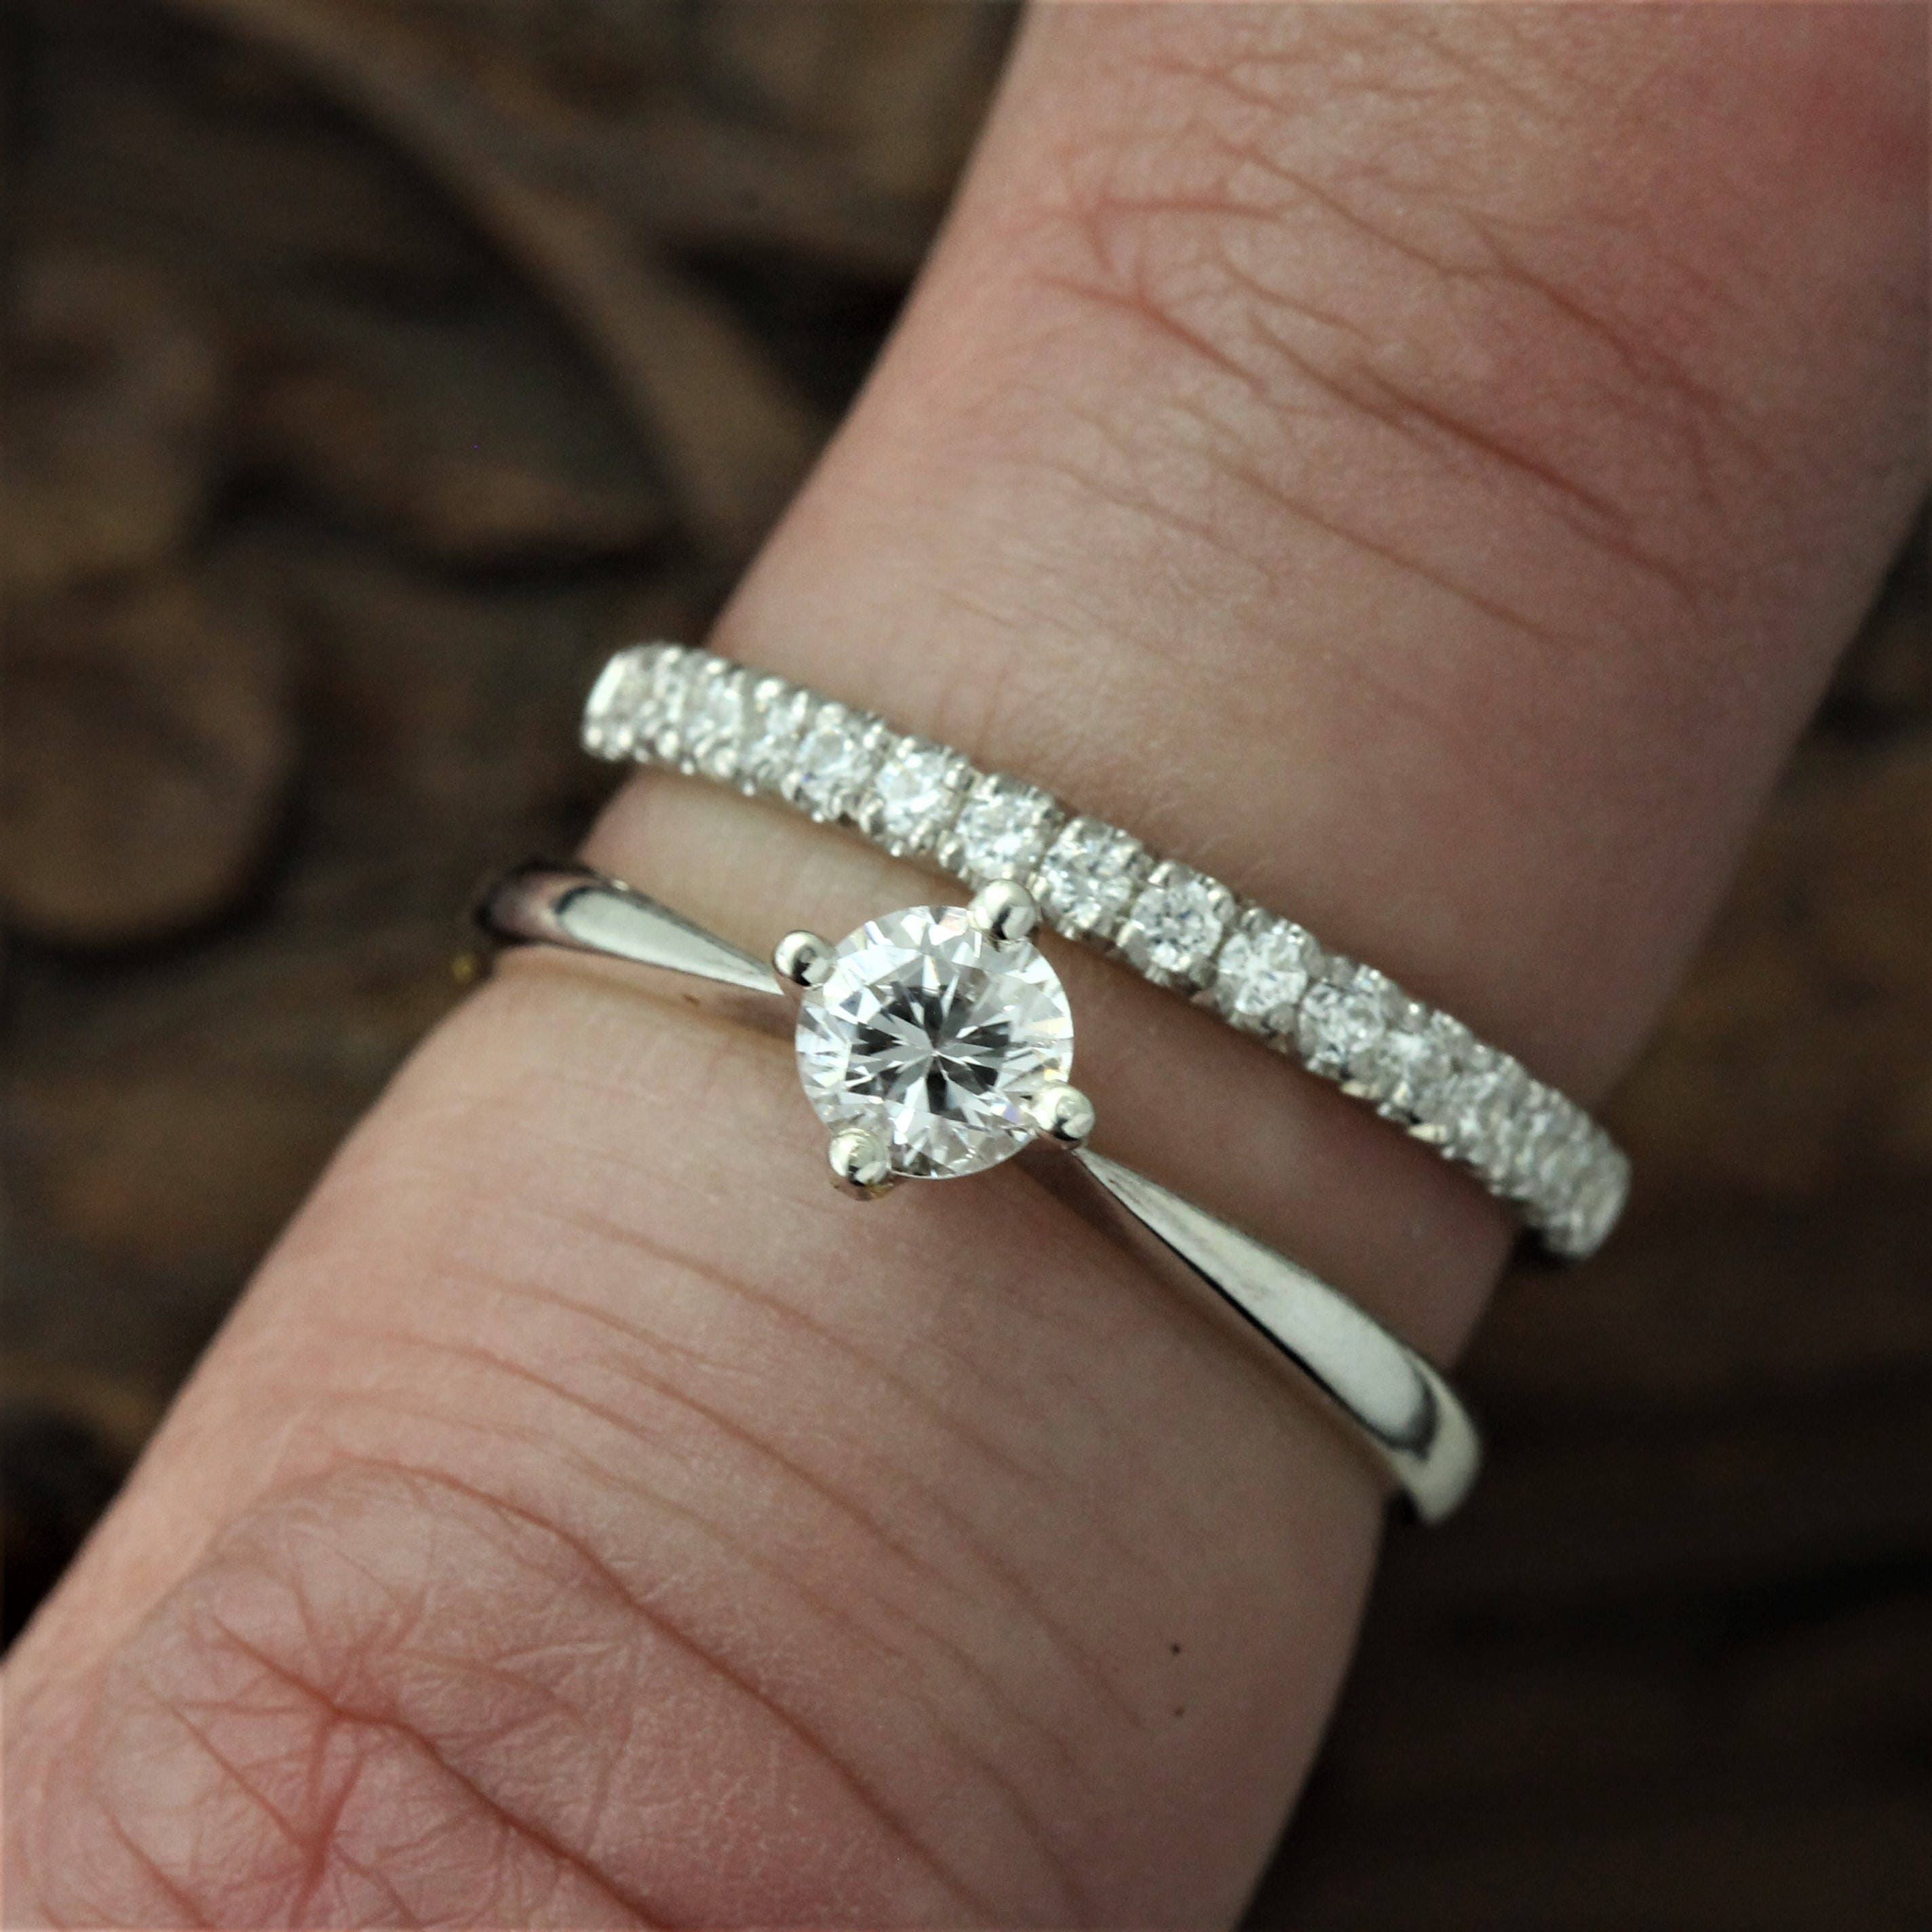 il band diamond collection laurie bands with full and crescent sarah designs white stars gold product moon celeste wedding fullxfull